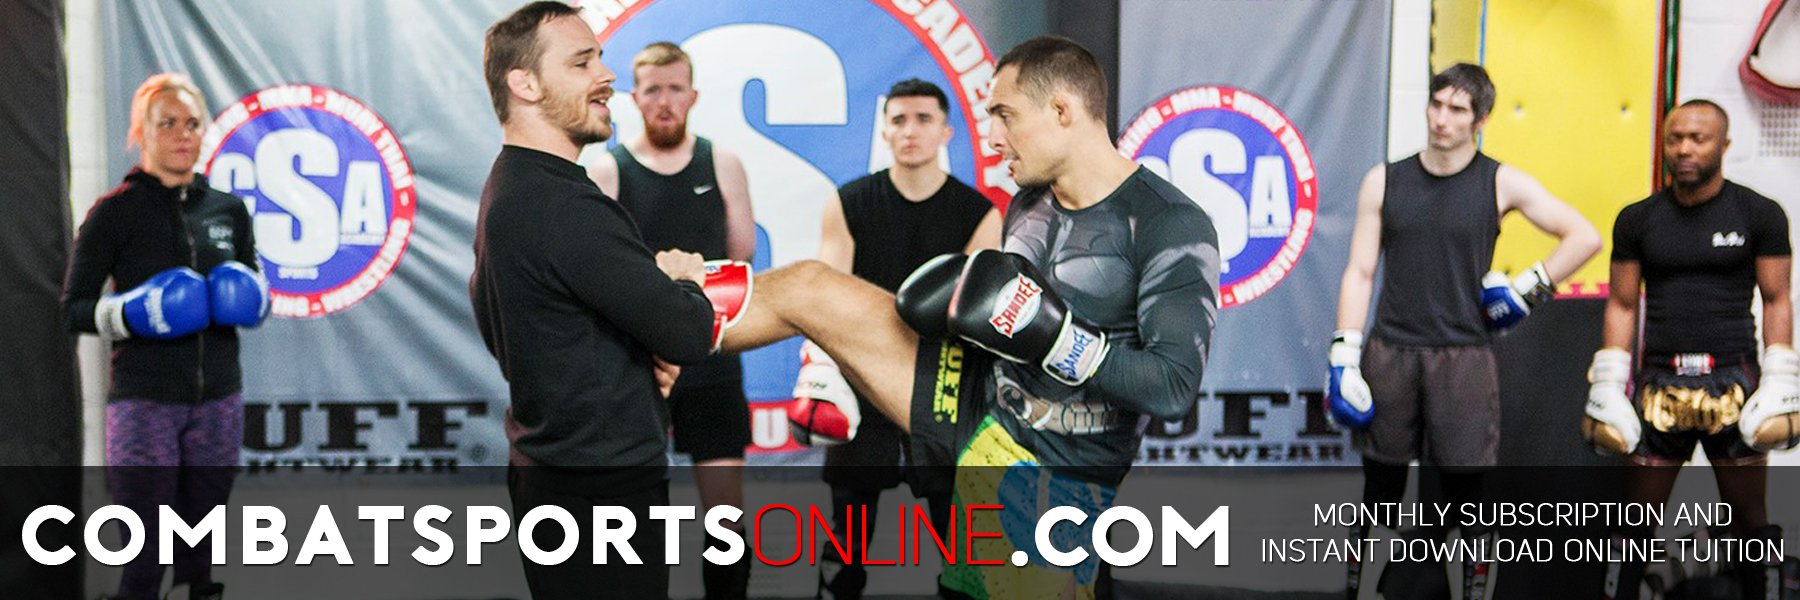 Subscribe to Combat Sports Online